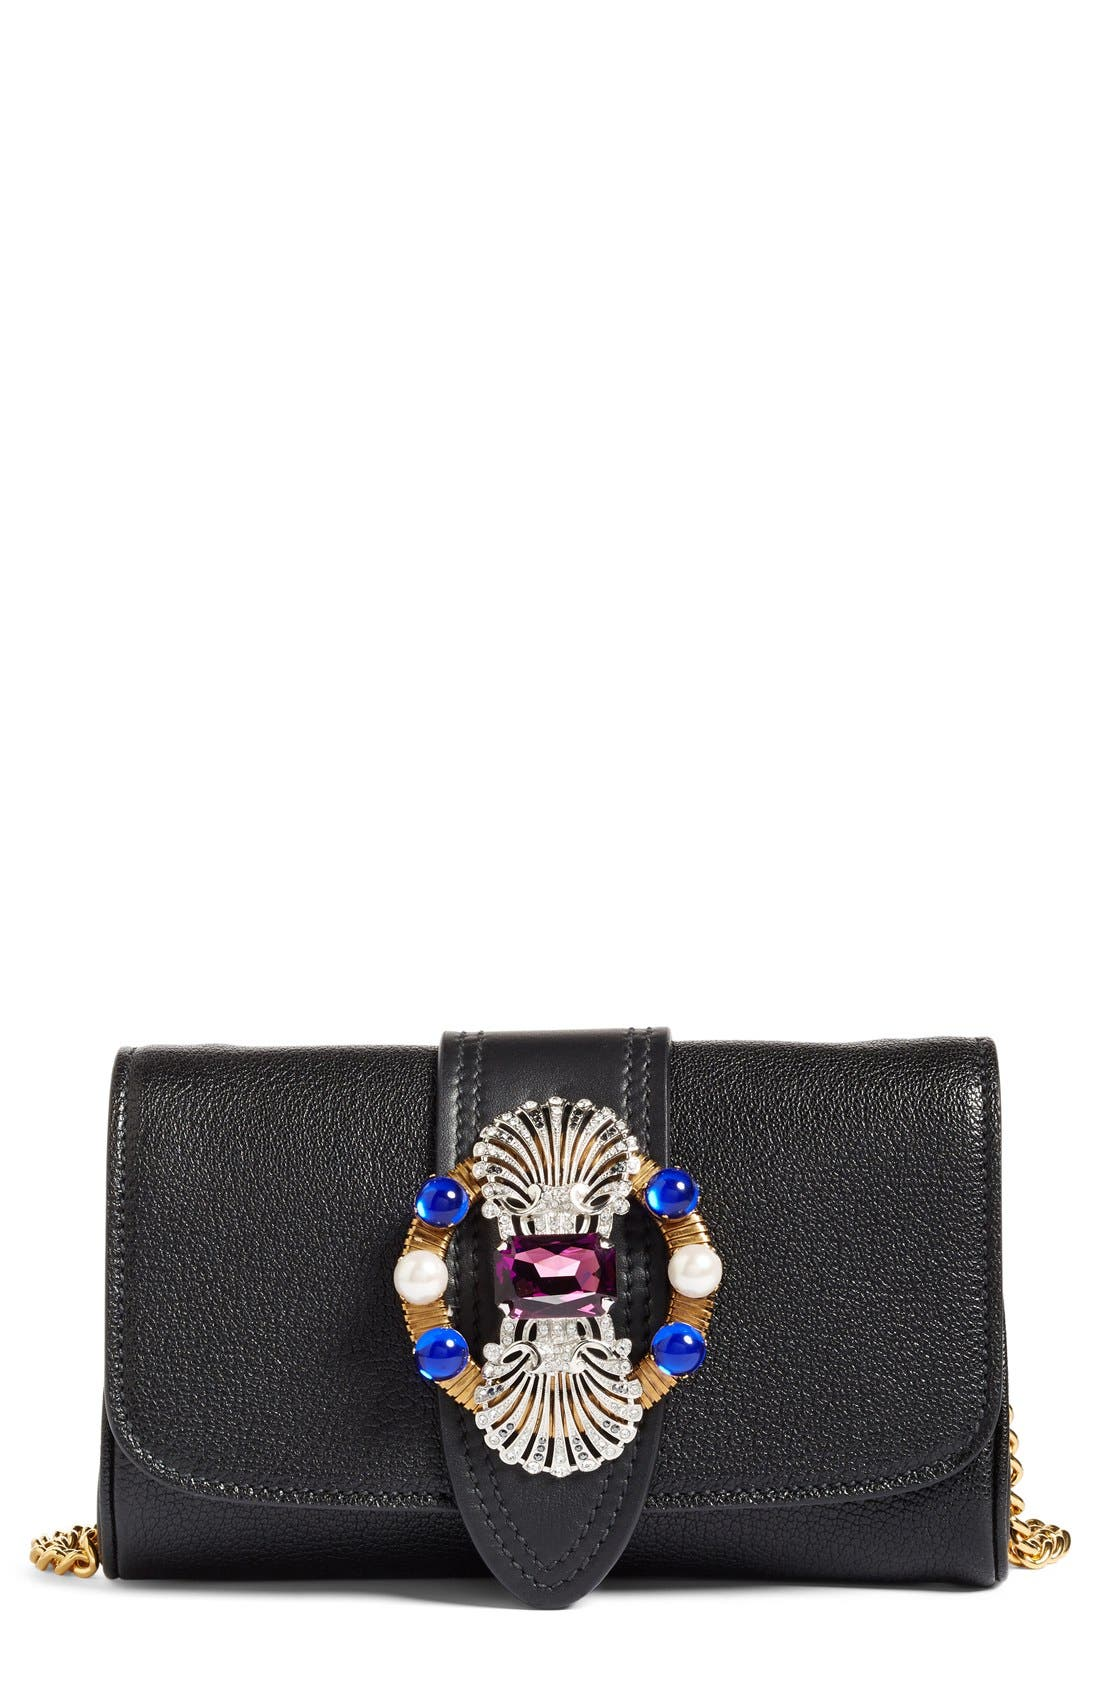 MIU MIU Jewel Goatskin Leather Clutch